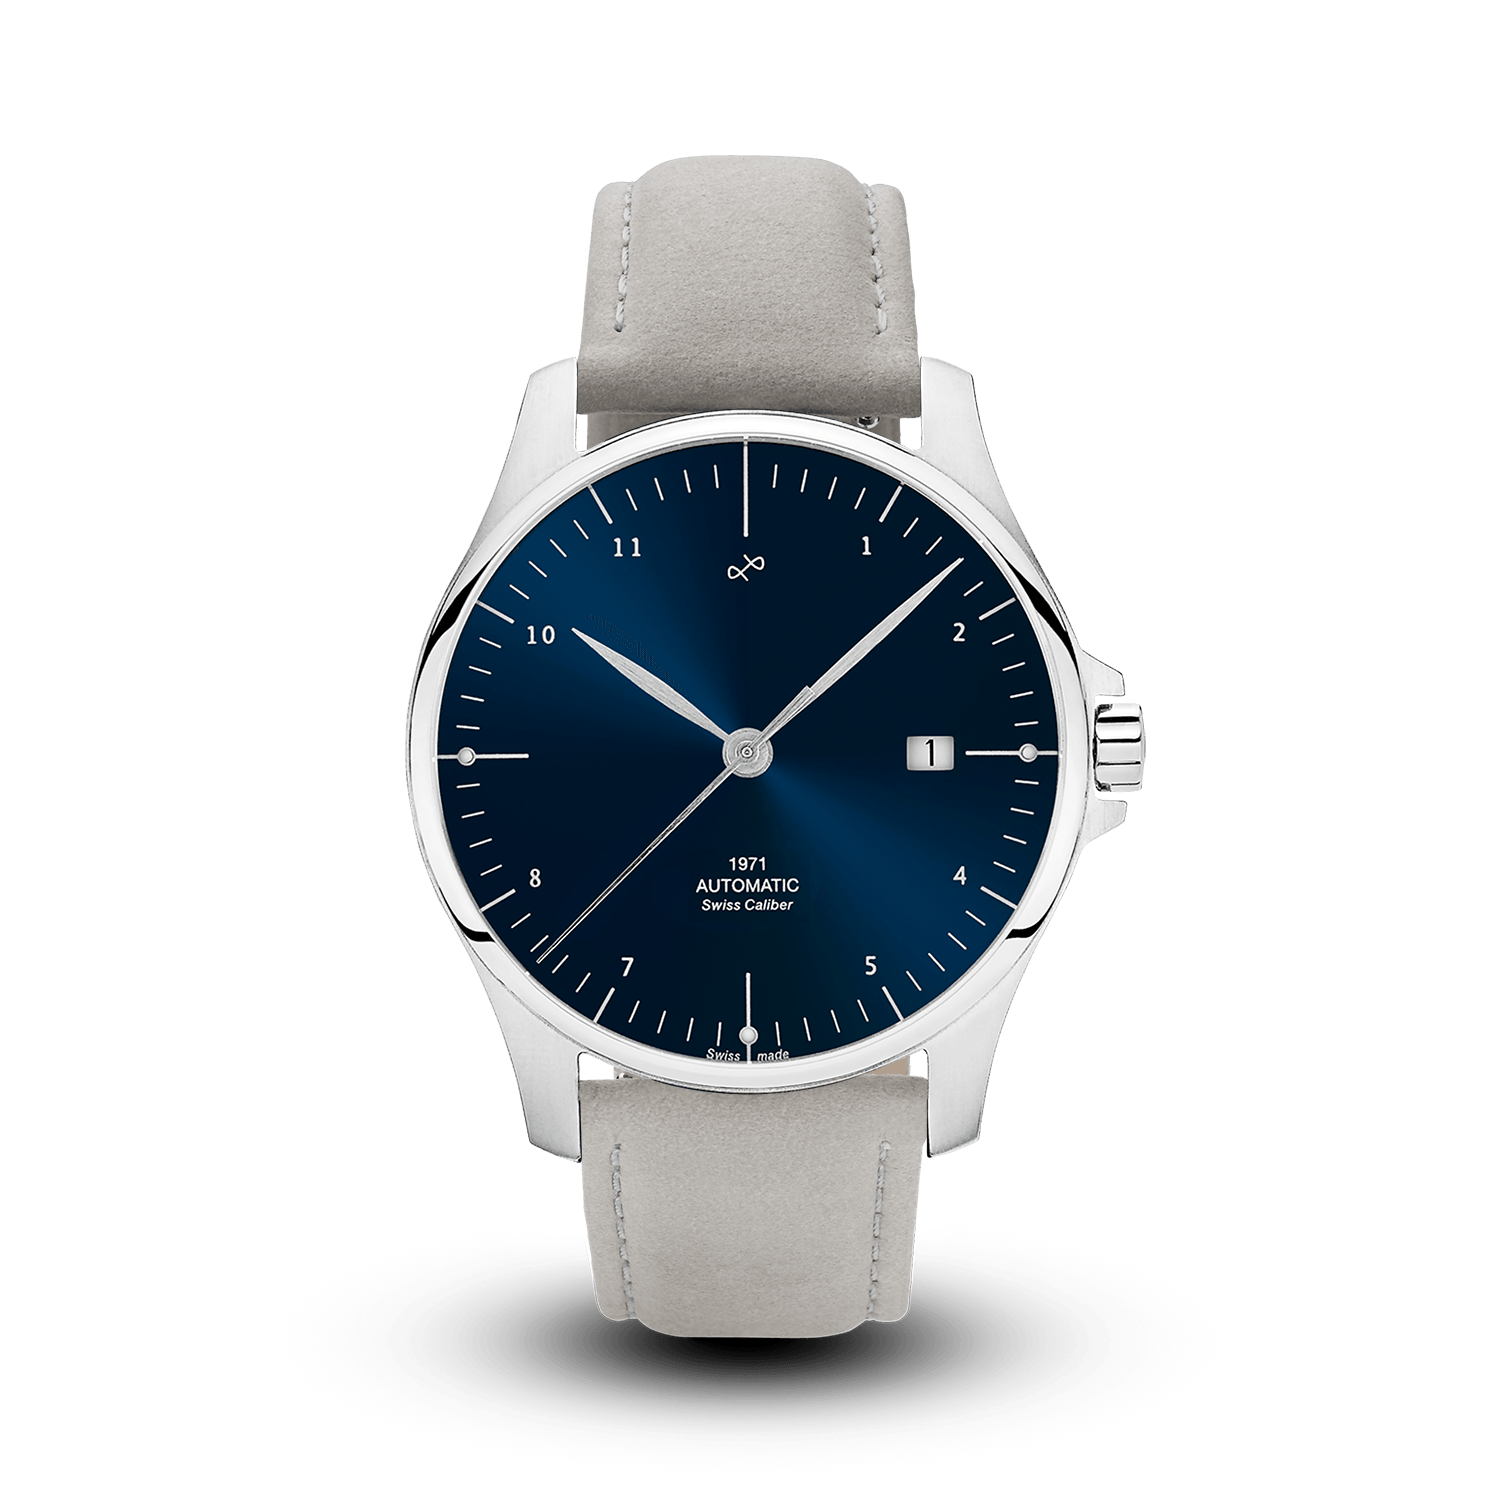 1971 Automatic, Steel / Night Blue - Swiss Made (786921914416)